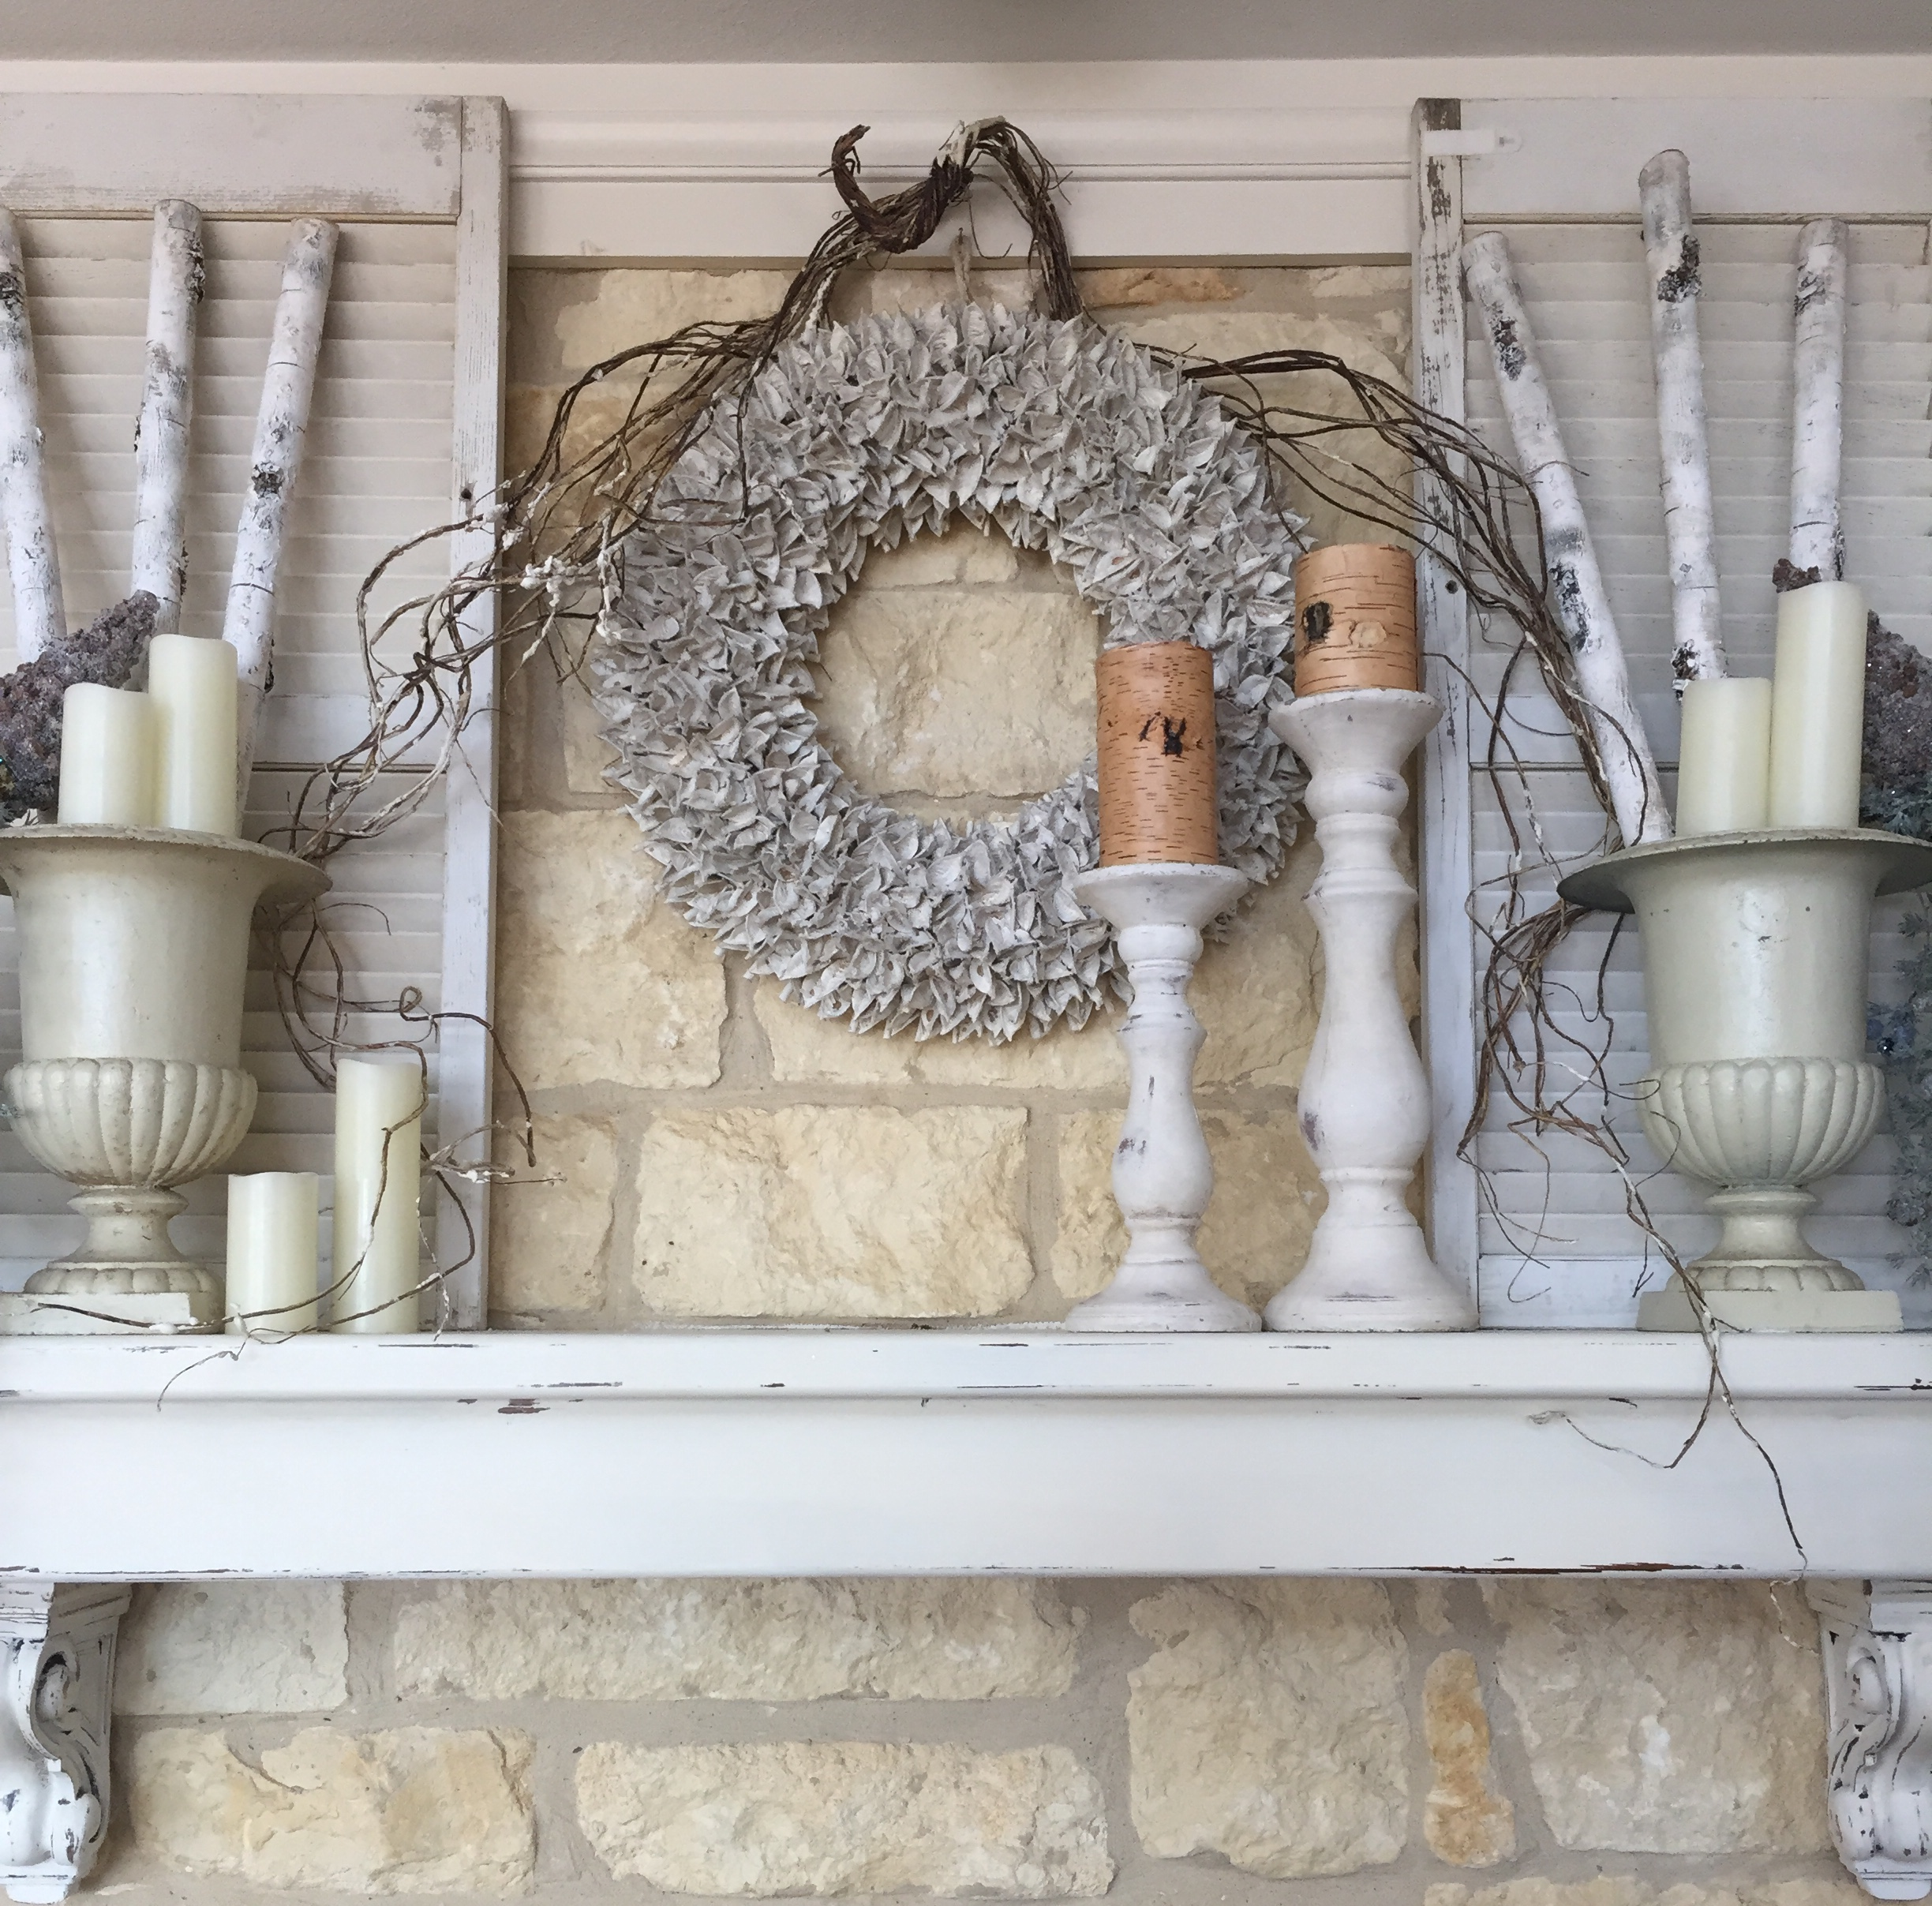 Decorating Ideas for Winter: 10 Creative Ideas for your home